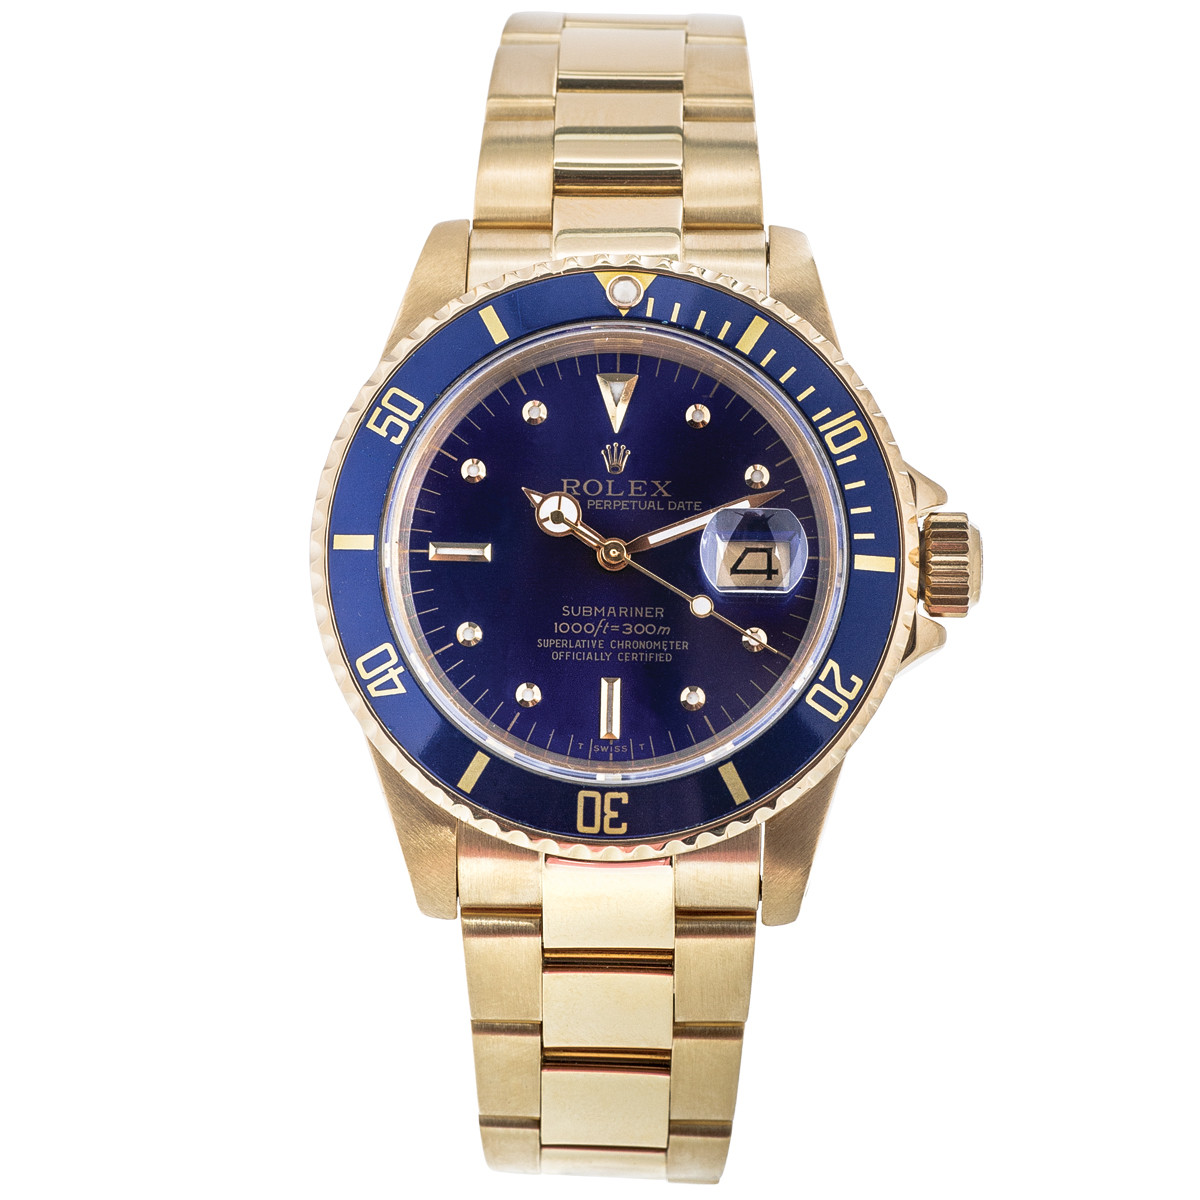 Preowned 18K Gold Rolex Submariner